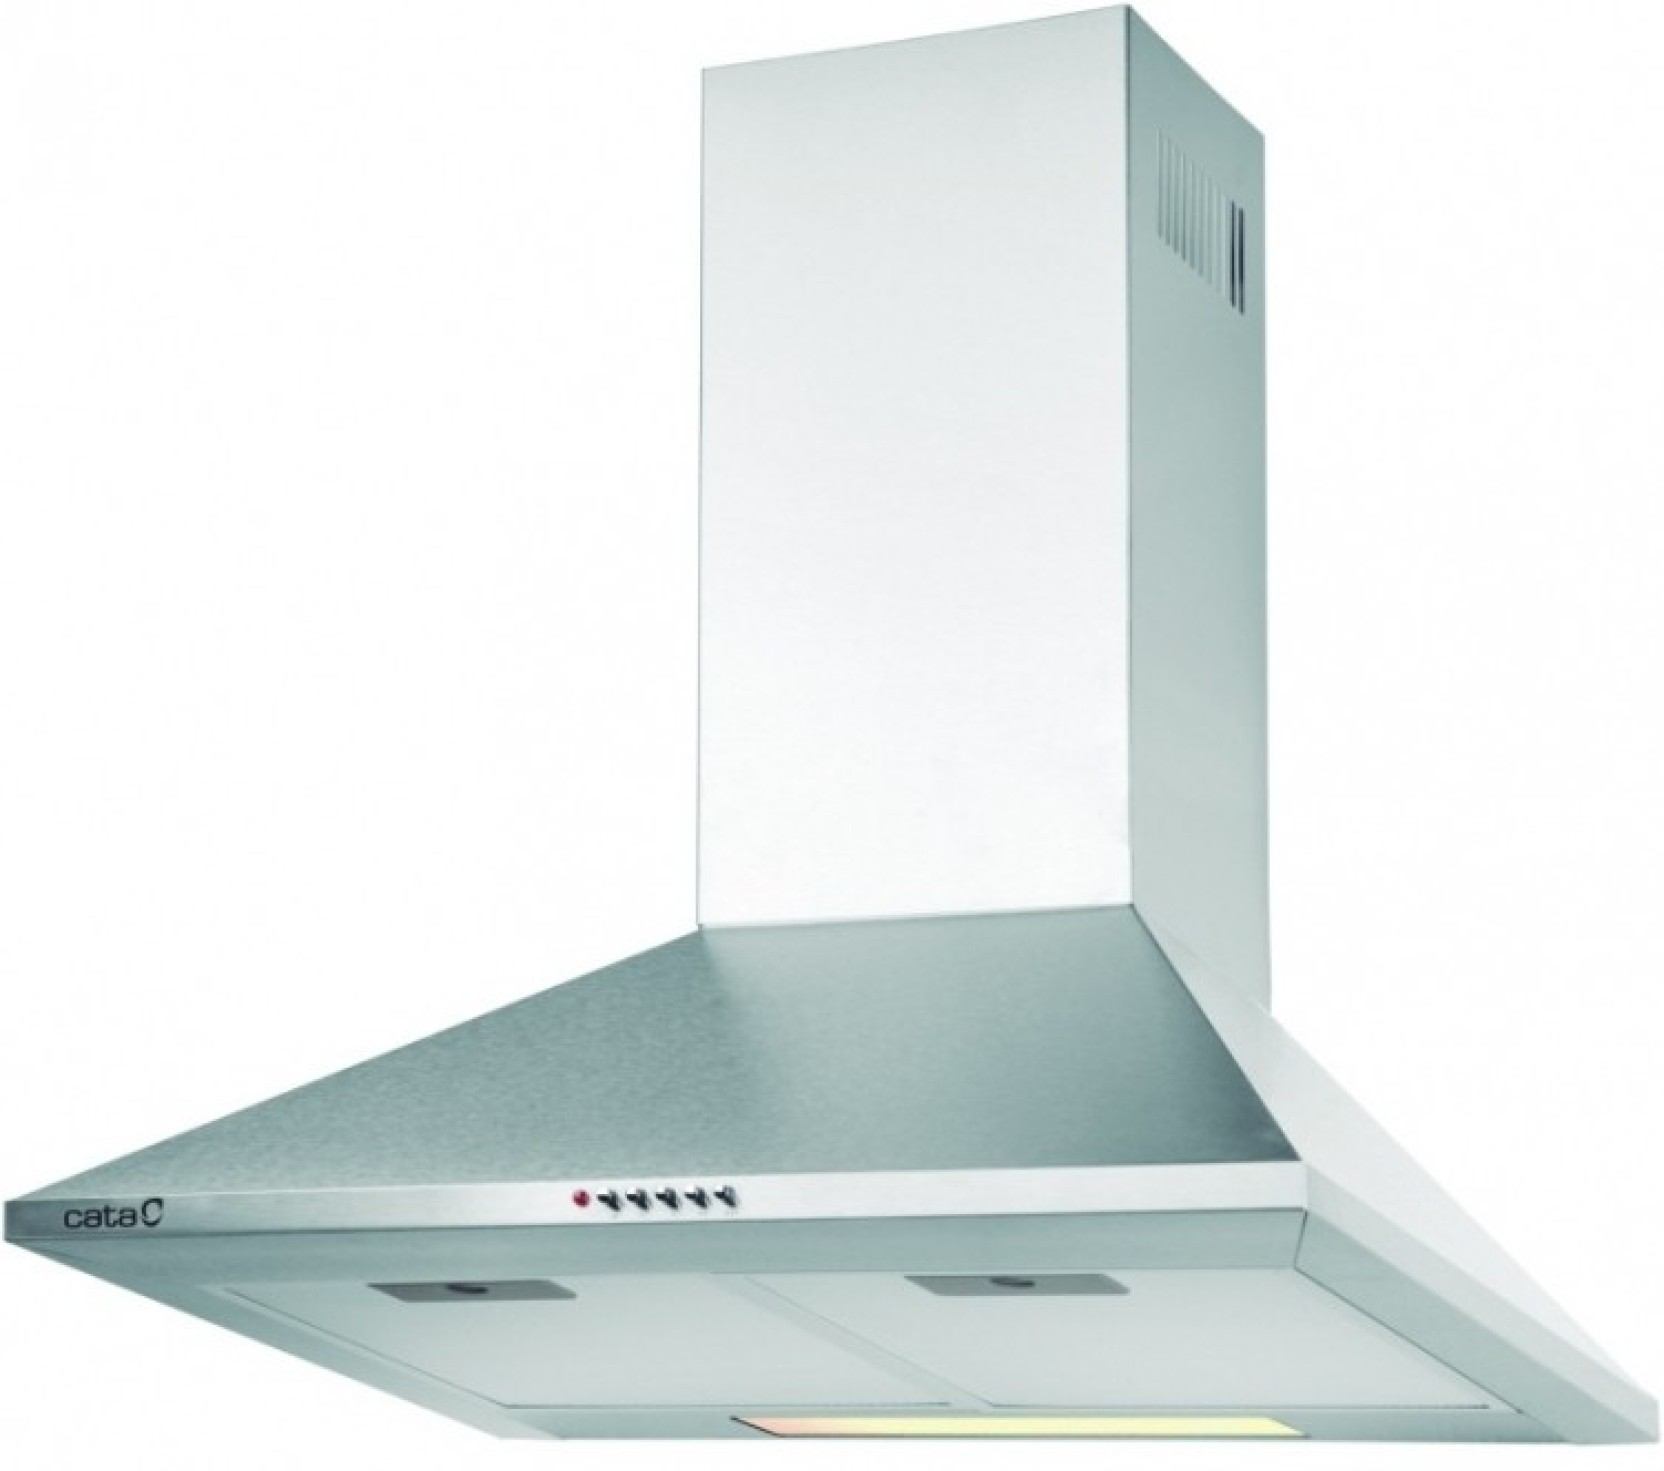 Cata VN 60 CM Wall Mounted Chimney Price in India - Buy Cata VN 60 ...